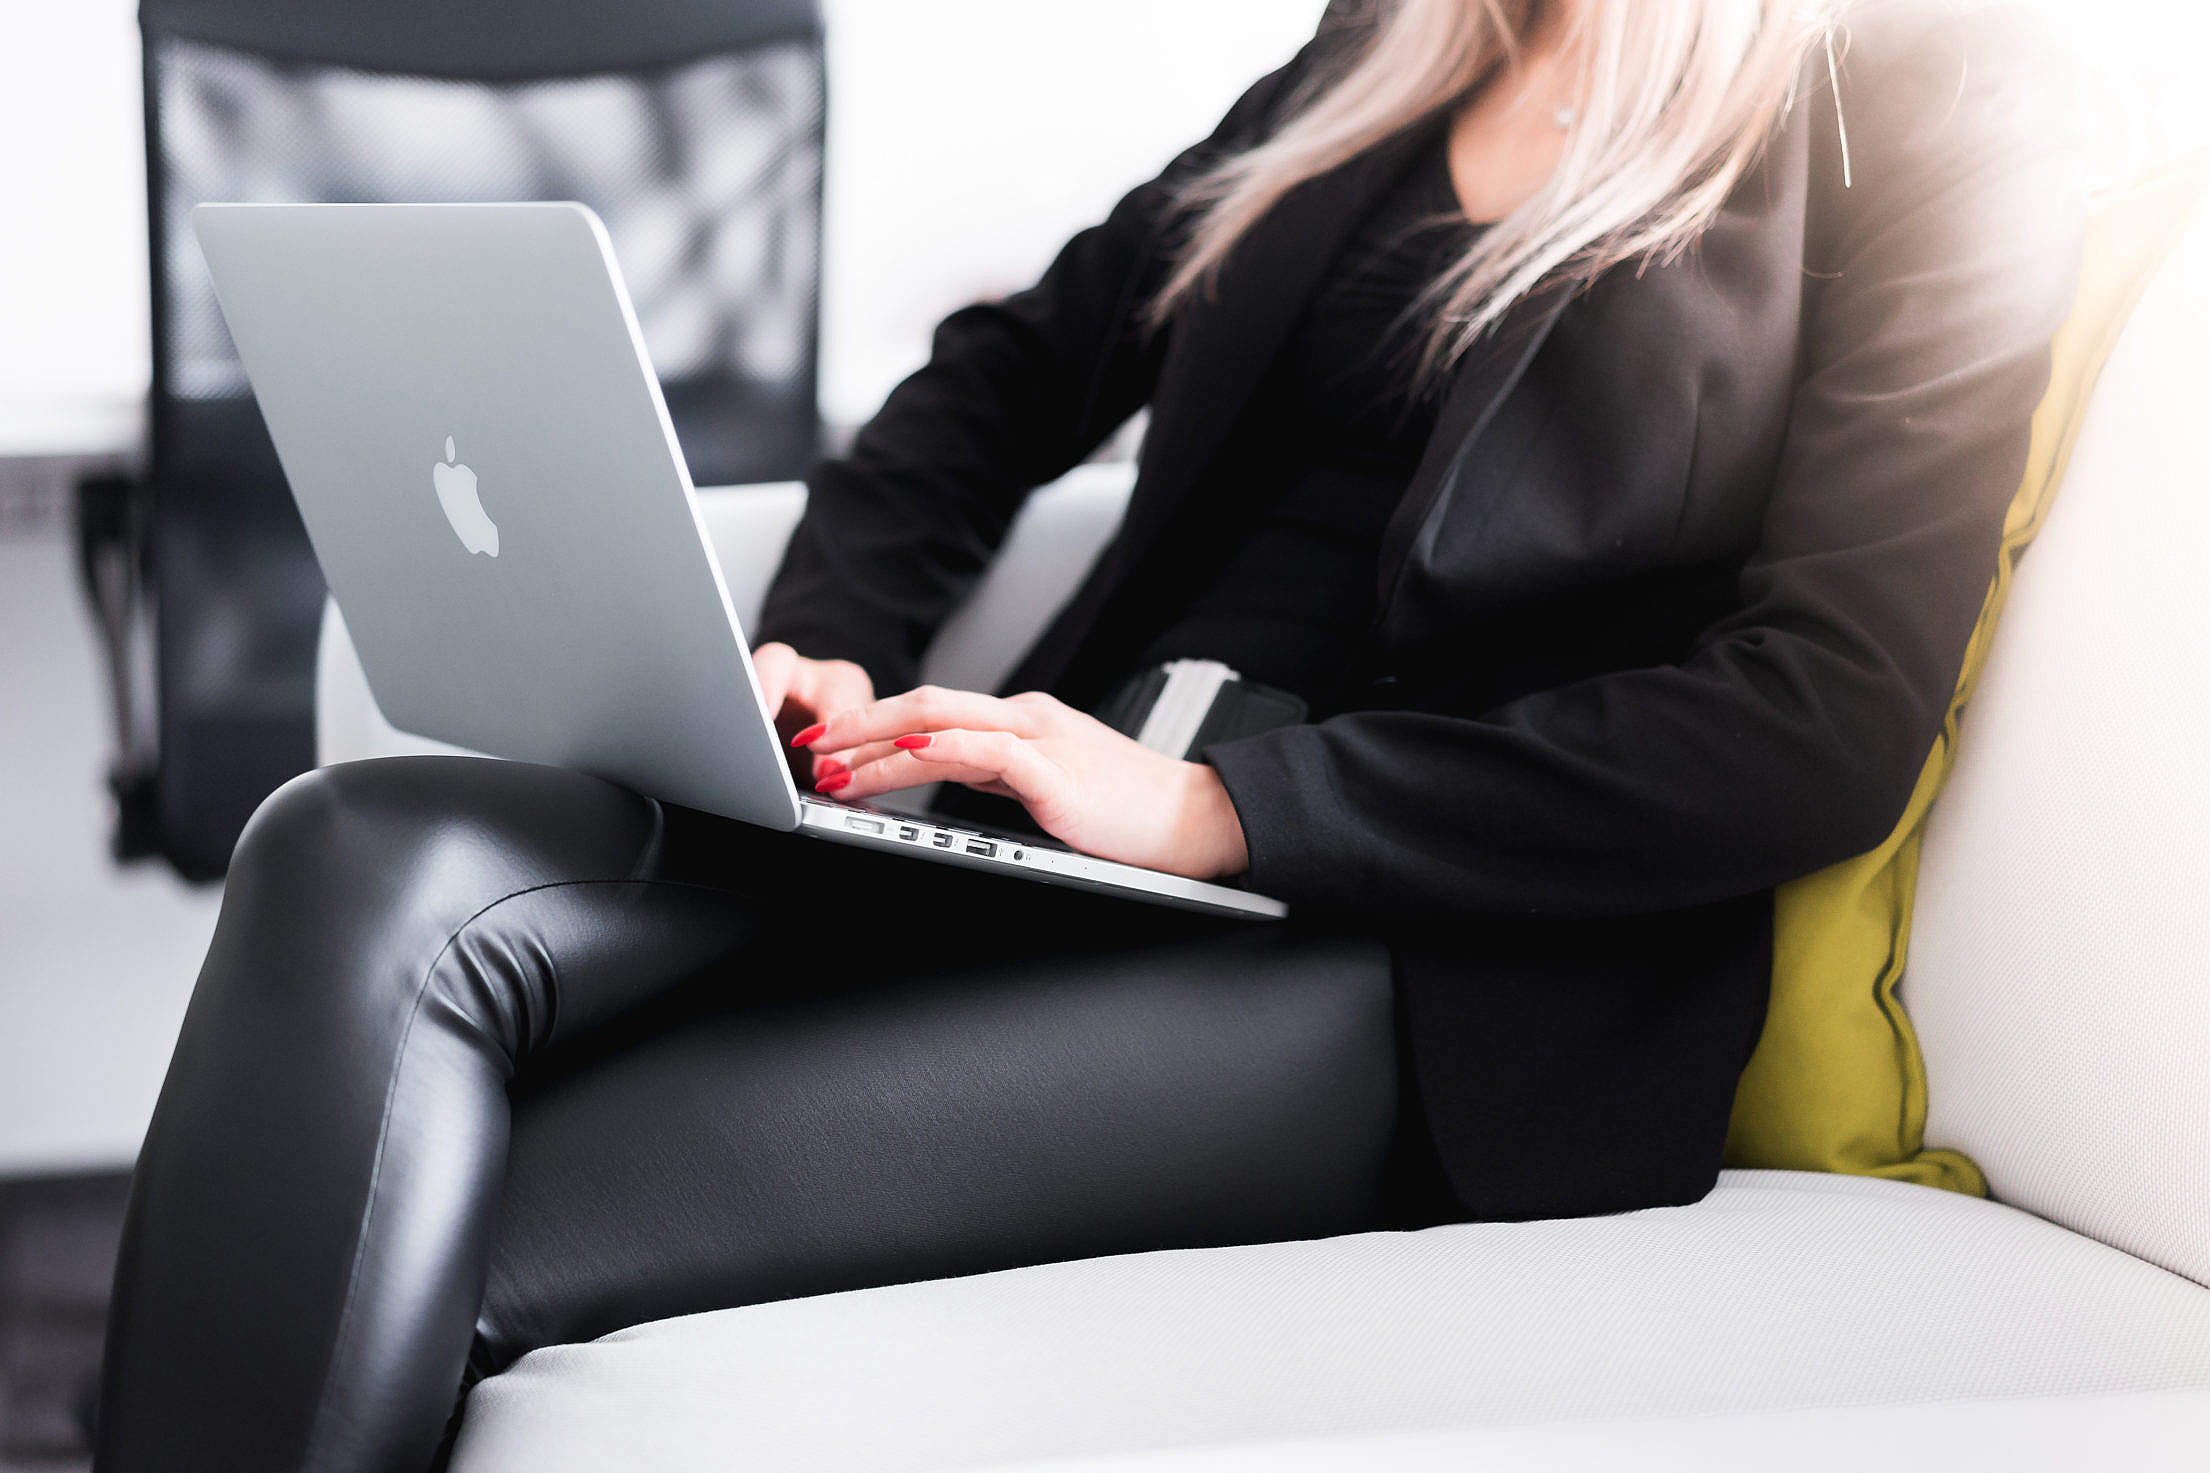 Woman Entrepreneur Working in the Office Free Stock Photo